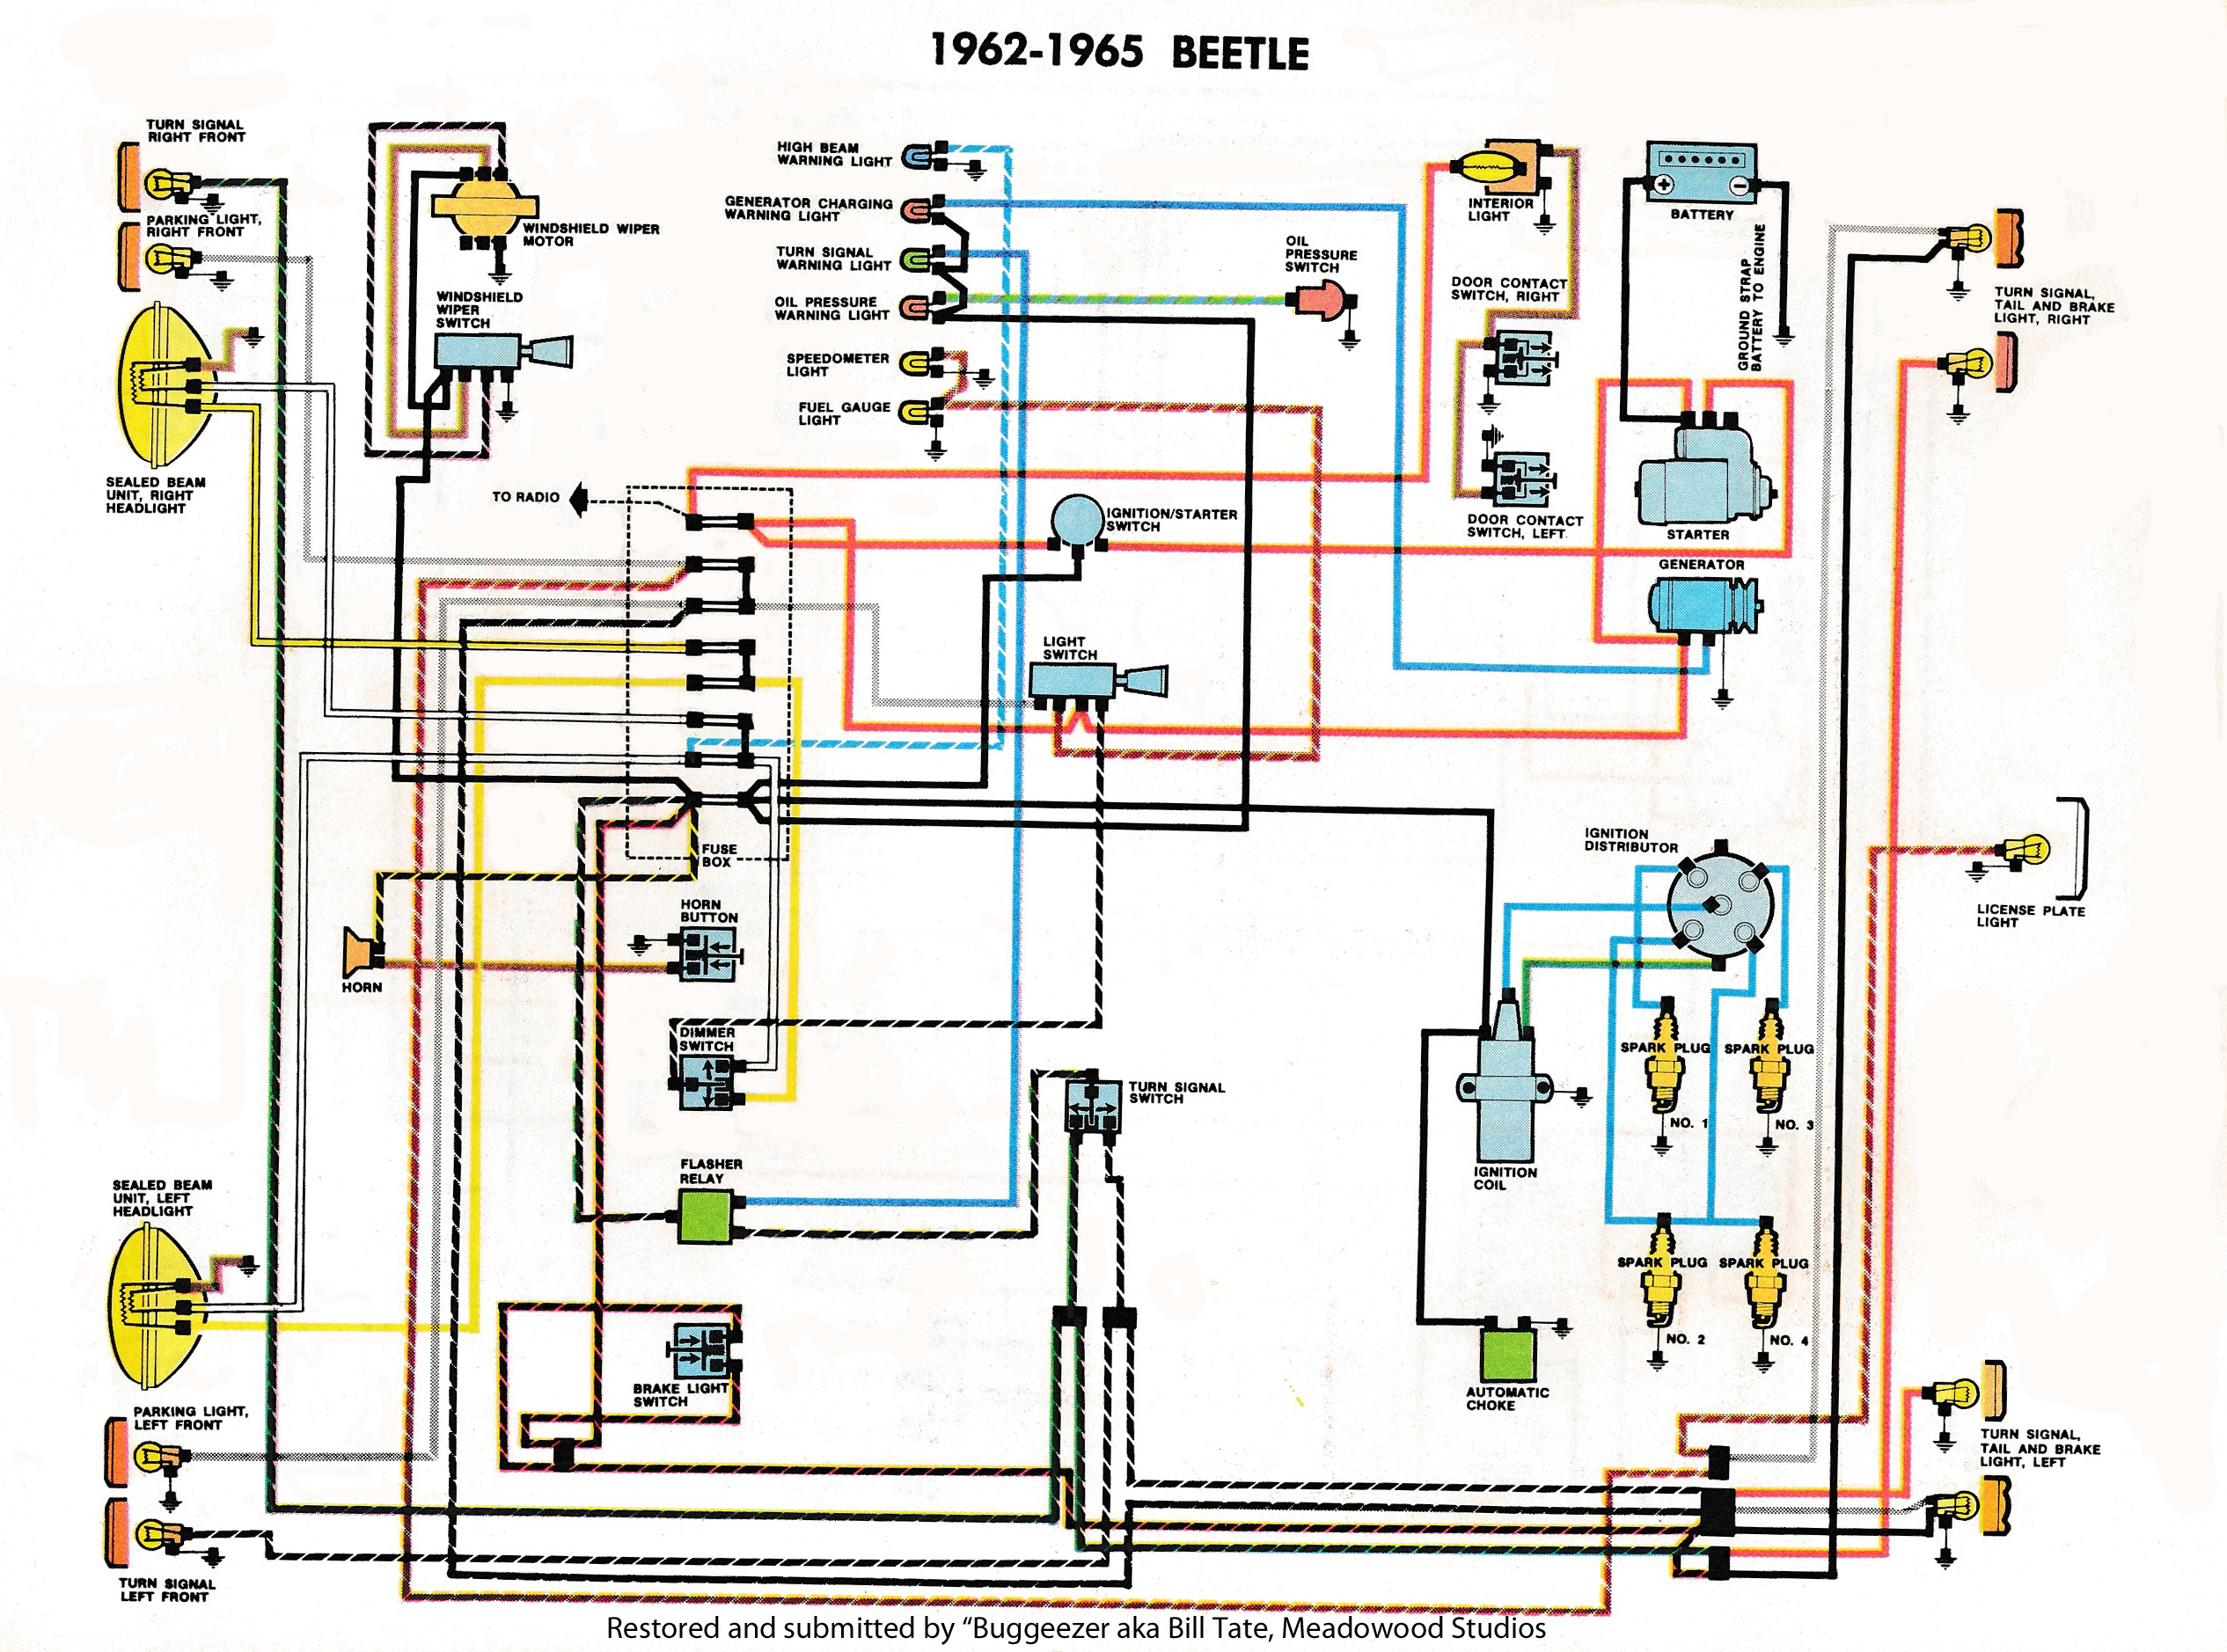 1966 chevelle wiring diagram as well vw beetle wiring diagramwiring diagram as well vw beetle wiring diagram on a 1974 vw fuse rh 1 geuzencollege